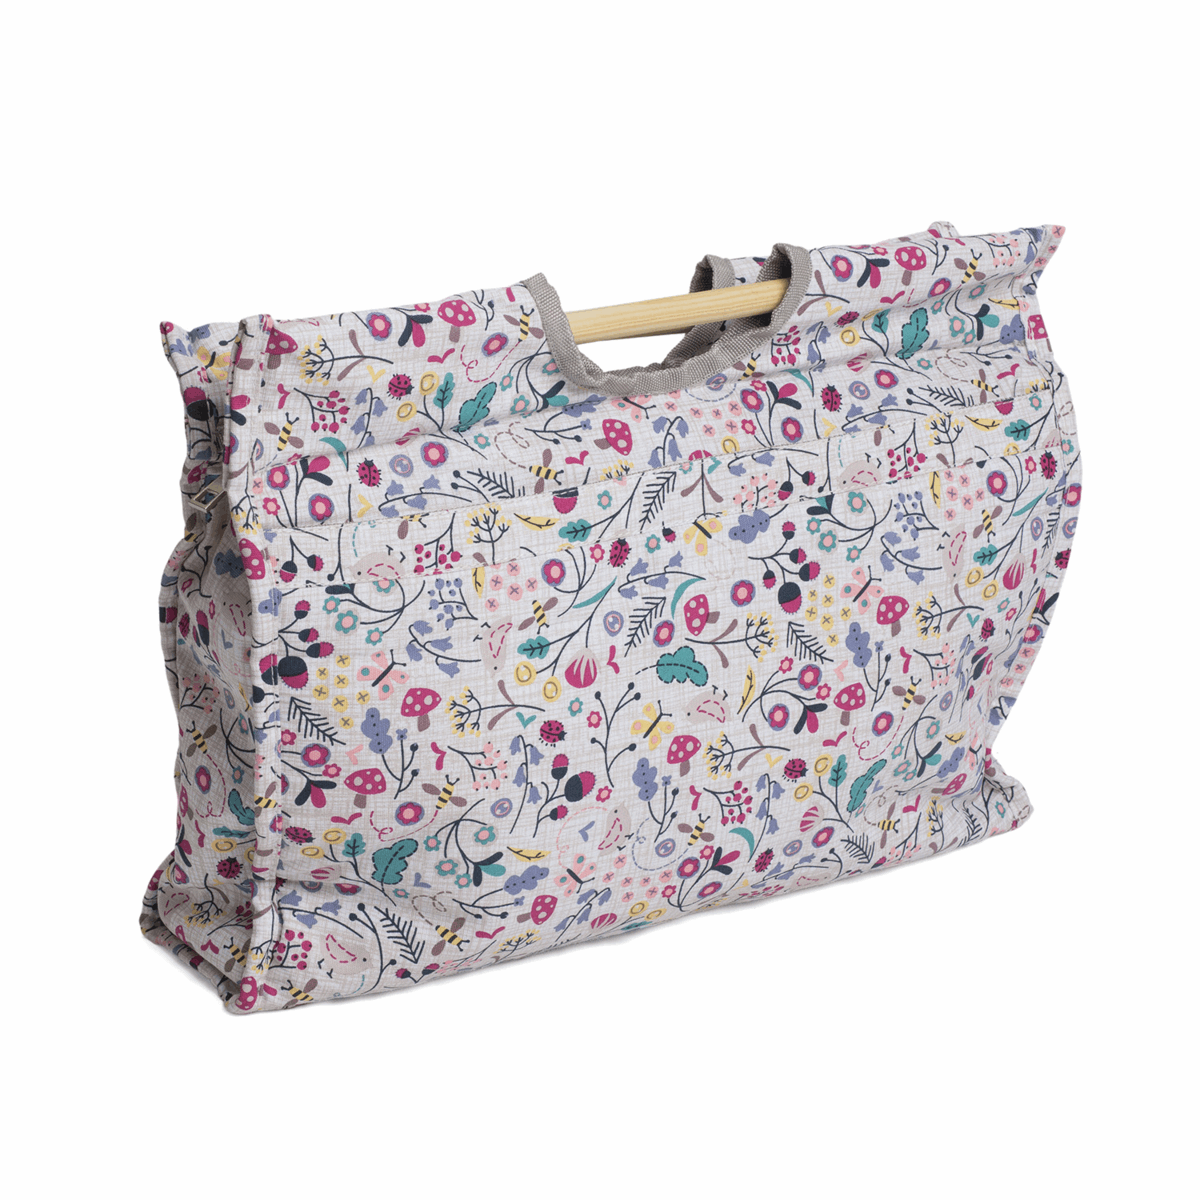 Picture of Craft Bag with Wooden Handles: Spring Time